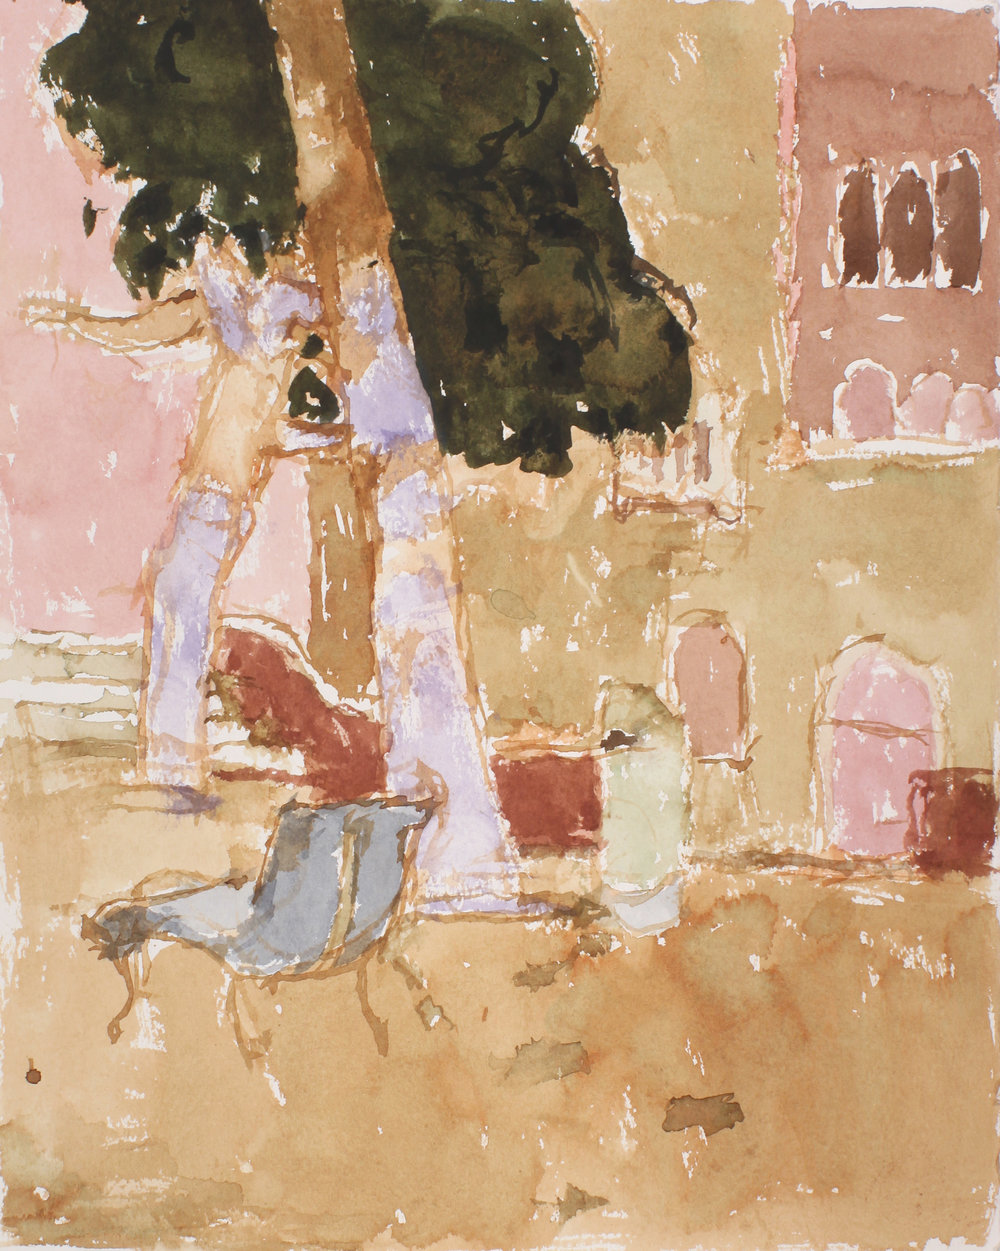 1994_Campo_Dei_Gesuiti_with_Blue_Bench_watercolour_on_paper_14x11in_WPF302.jpg